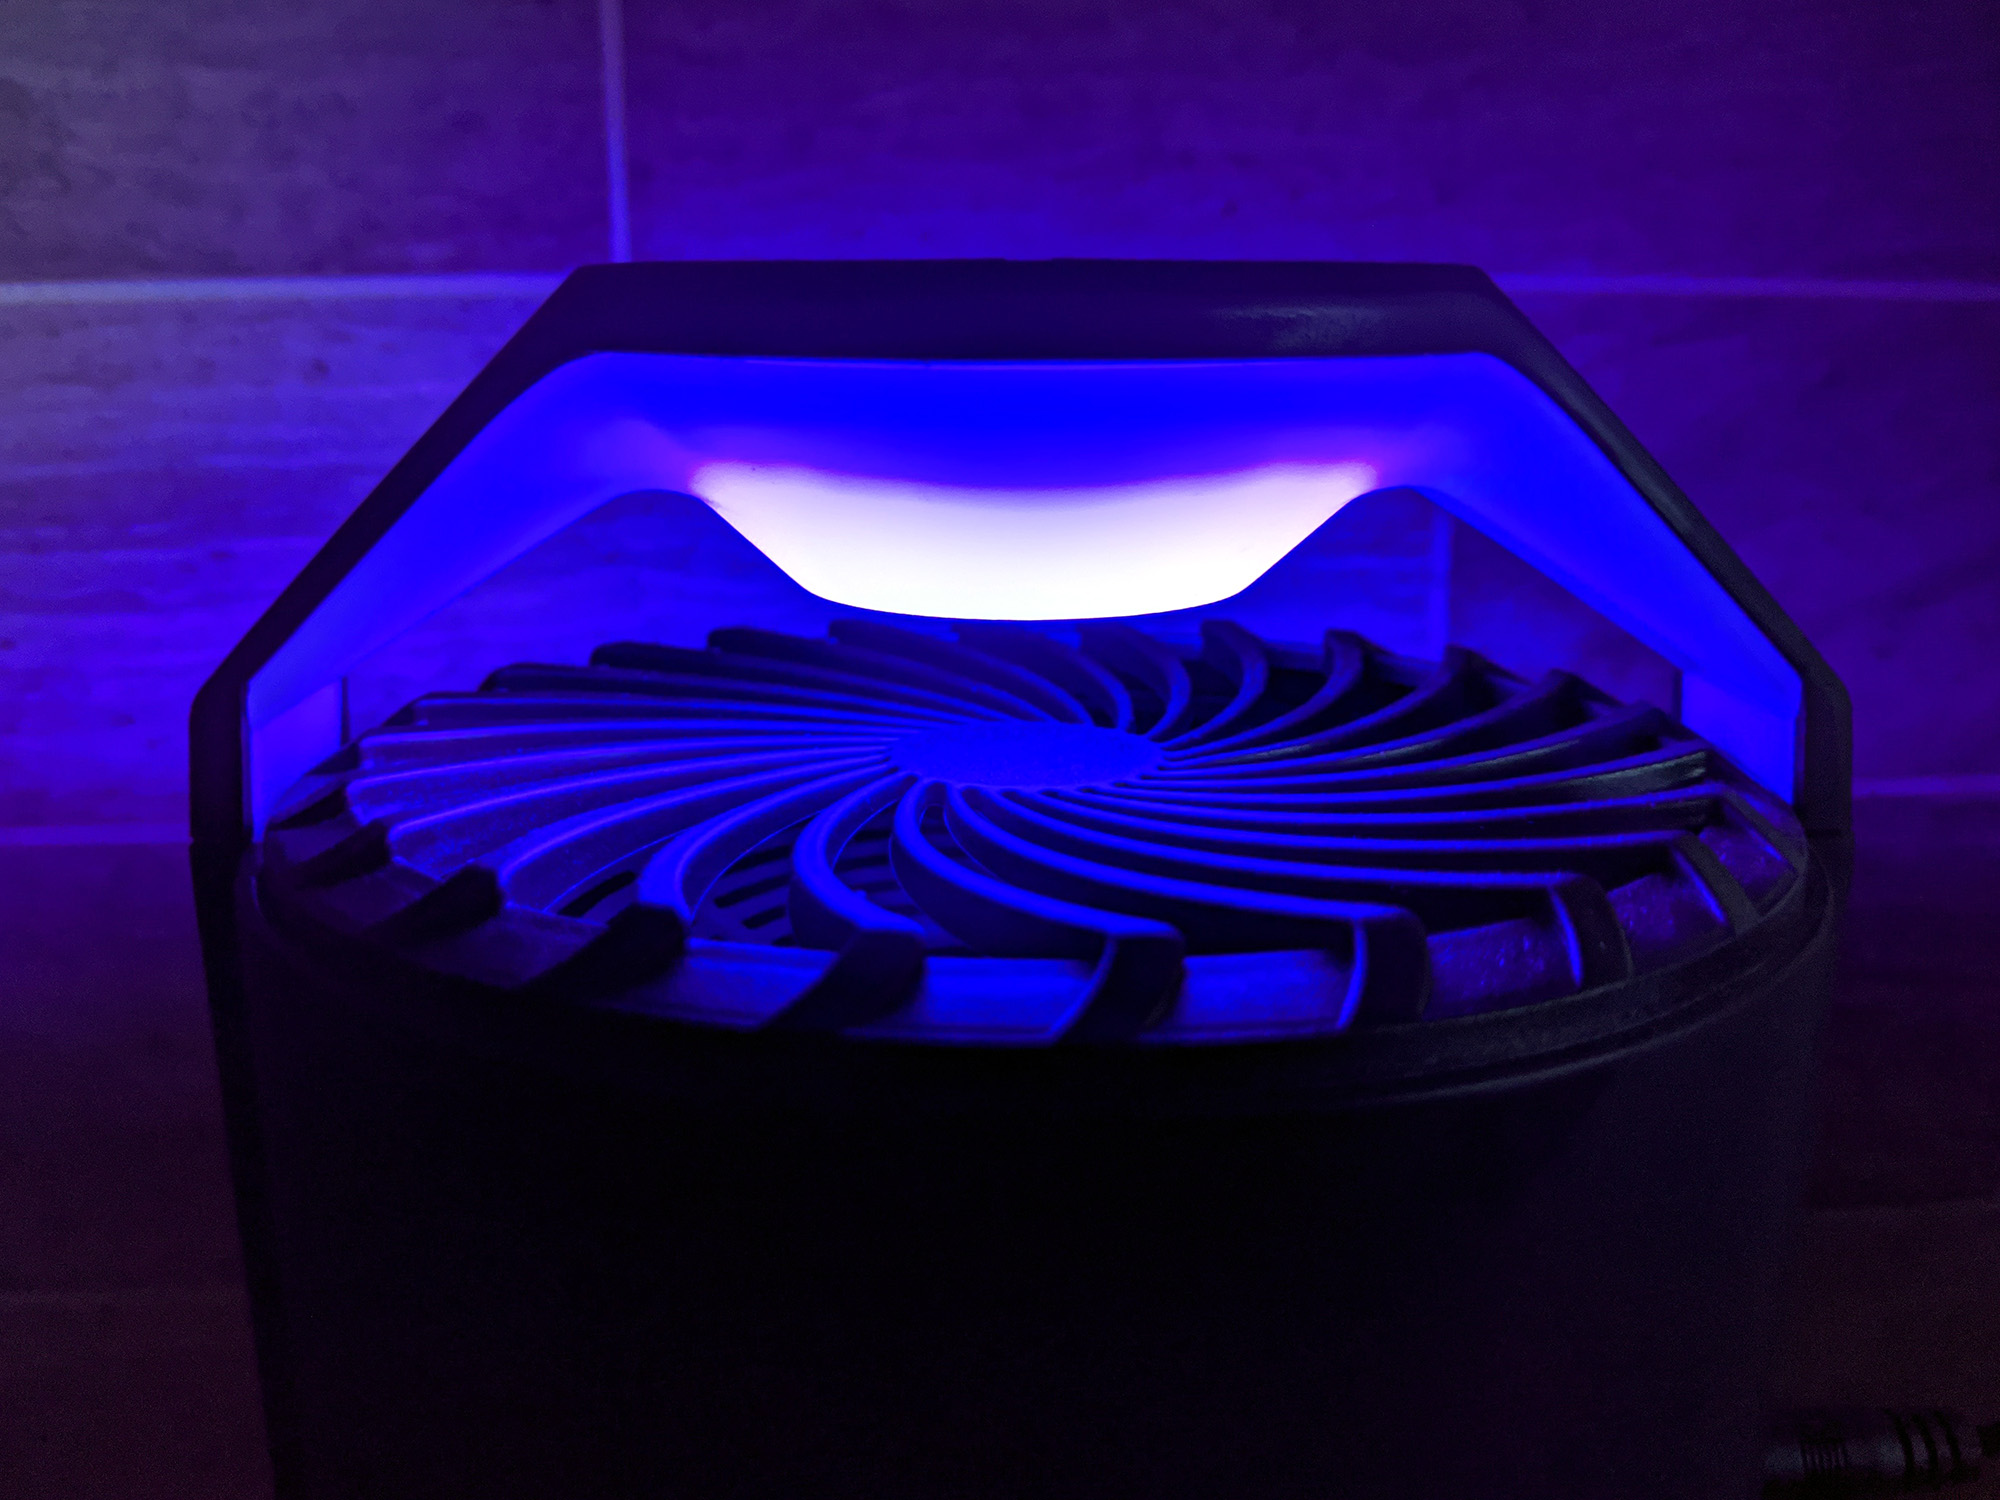 katchy uv light